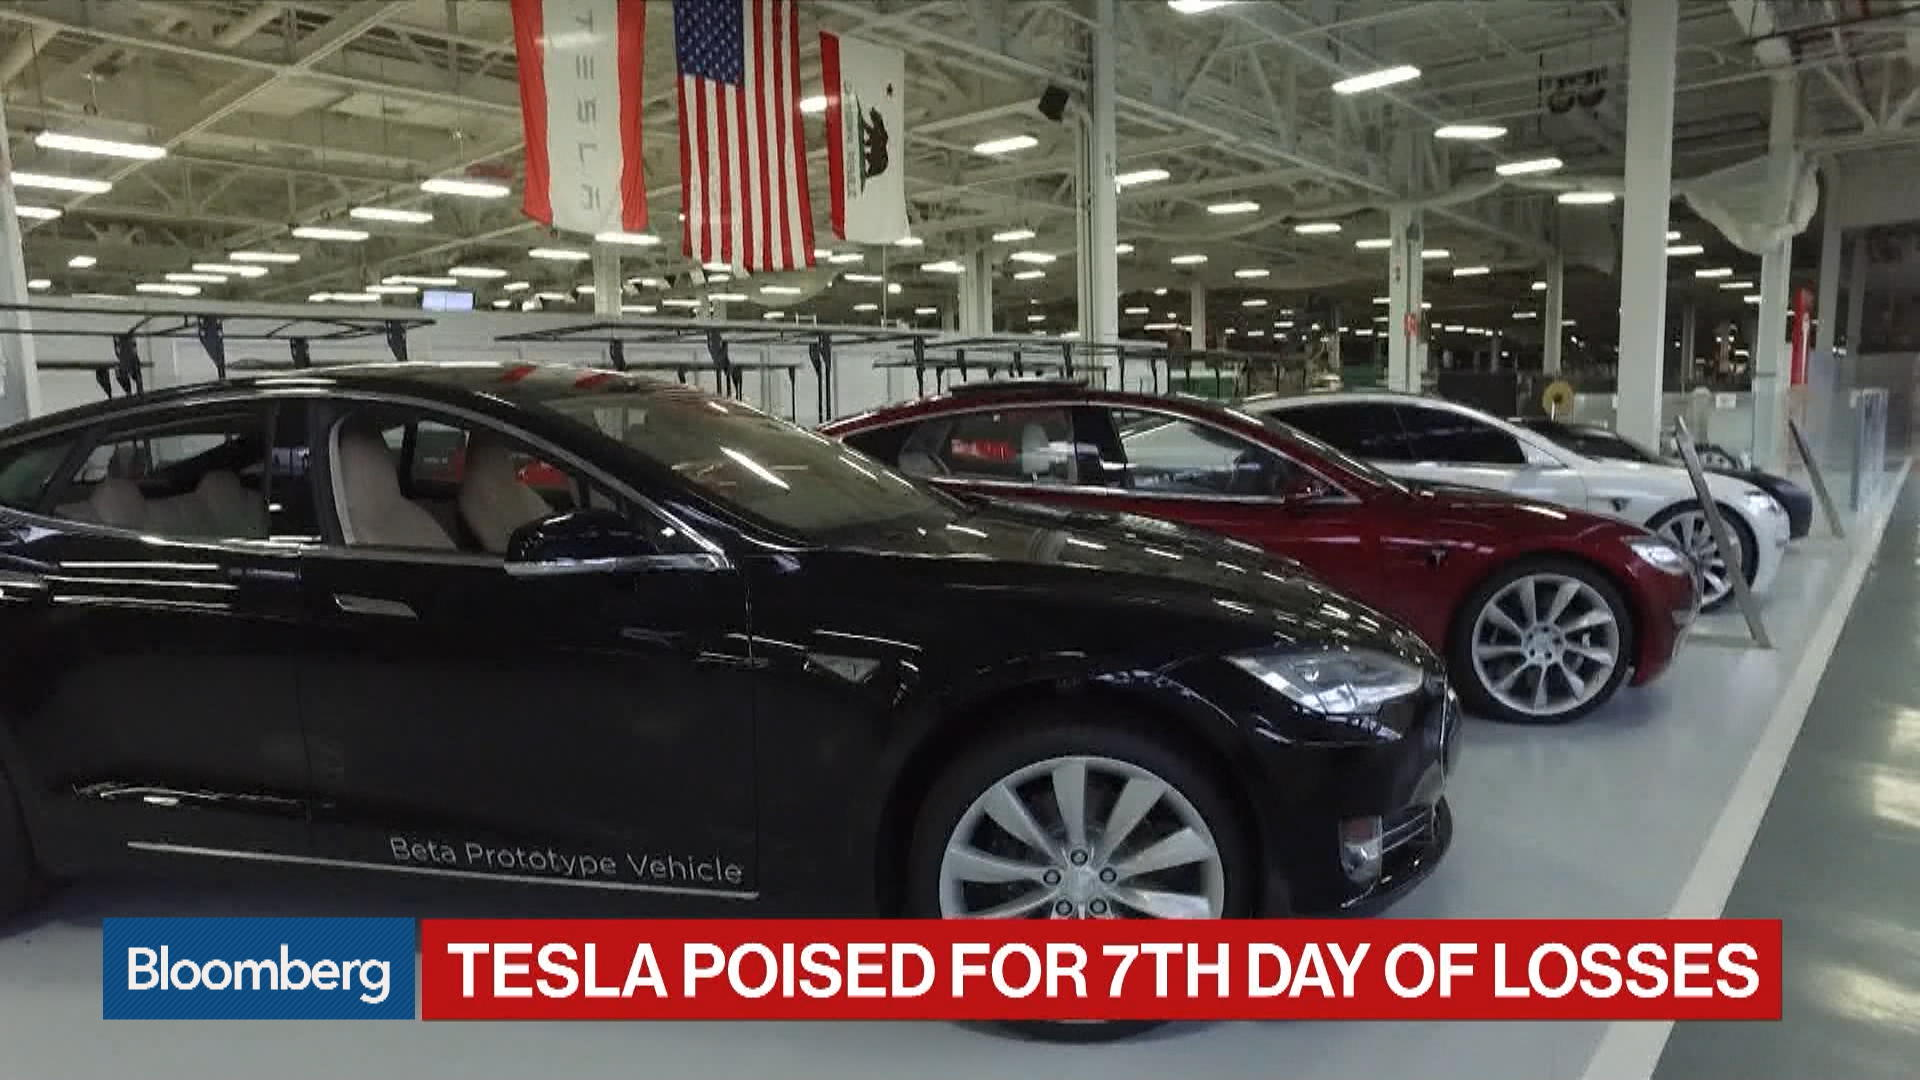 Tesla Poised for Seventh Day of Losses on Demand, Trade Concerns